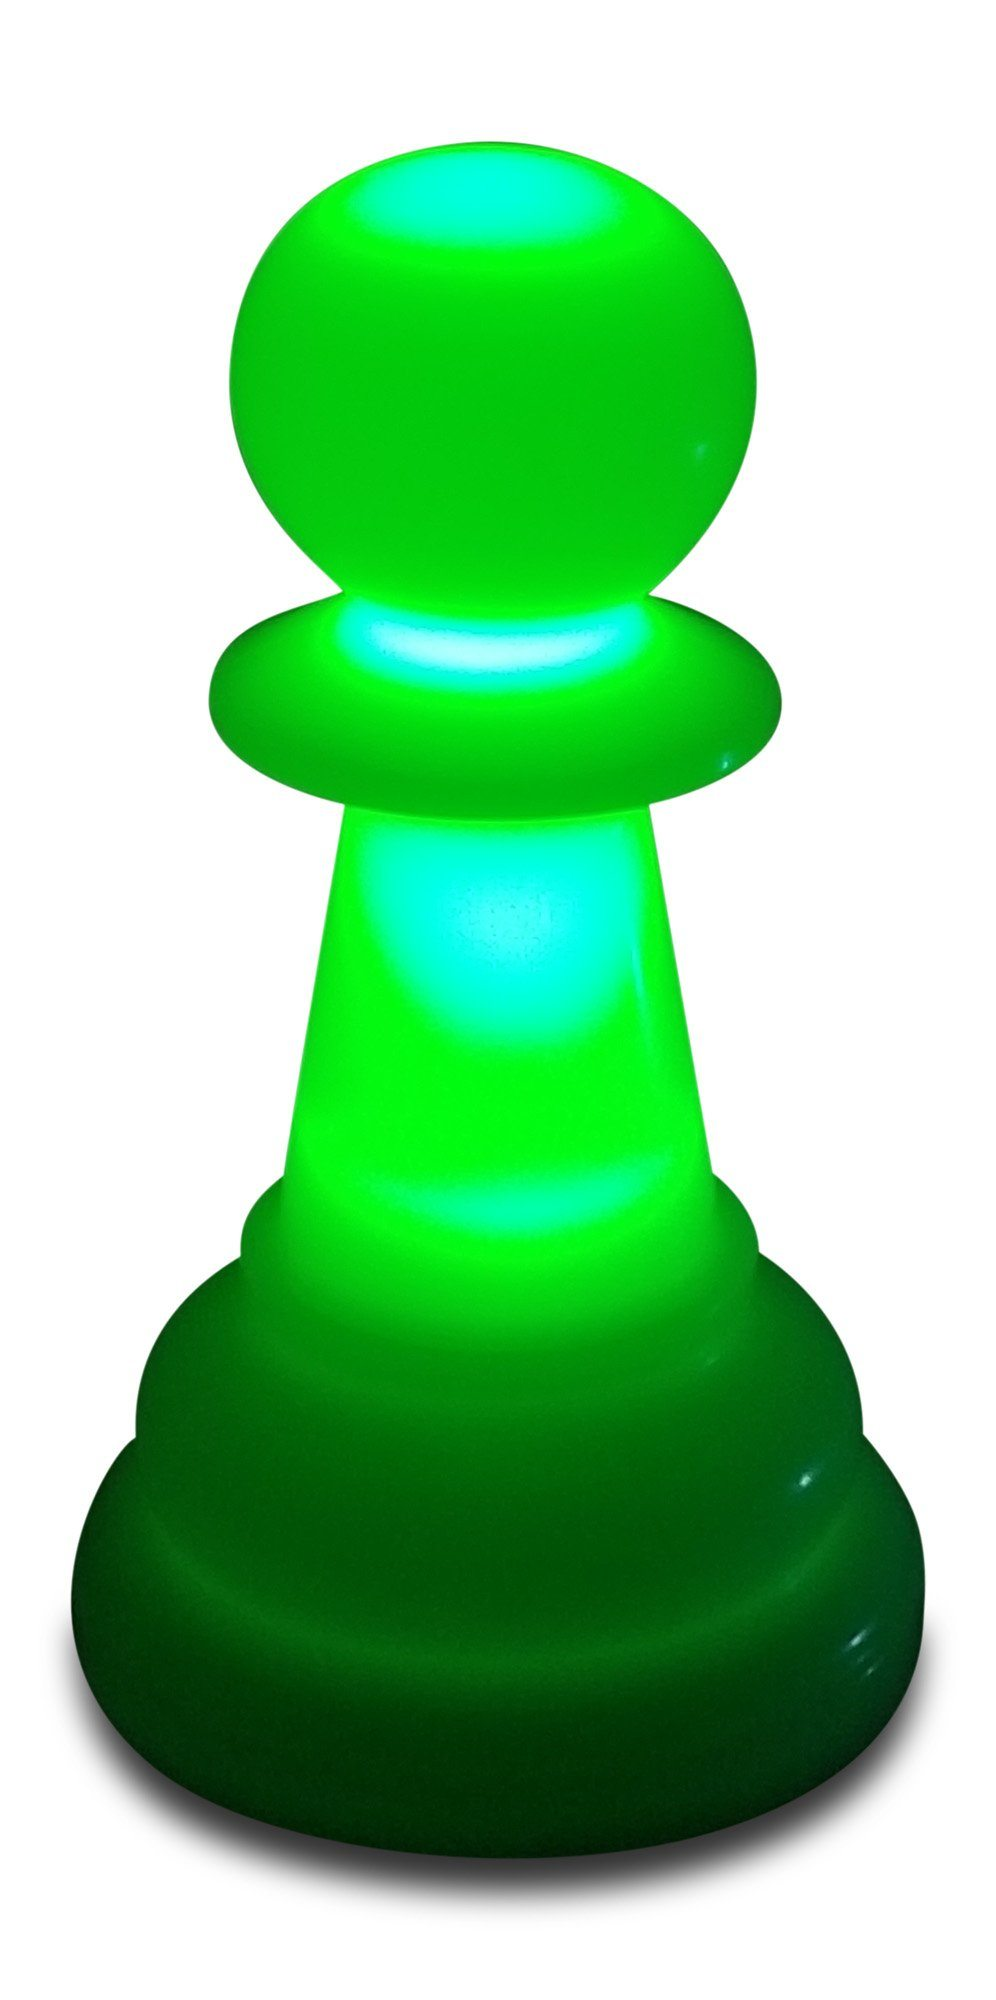 MegaChess 23 Inch Perfect Pawn Light-Up Giant Chess Piece - Green |  | MegaChess.com